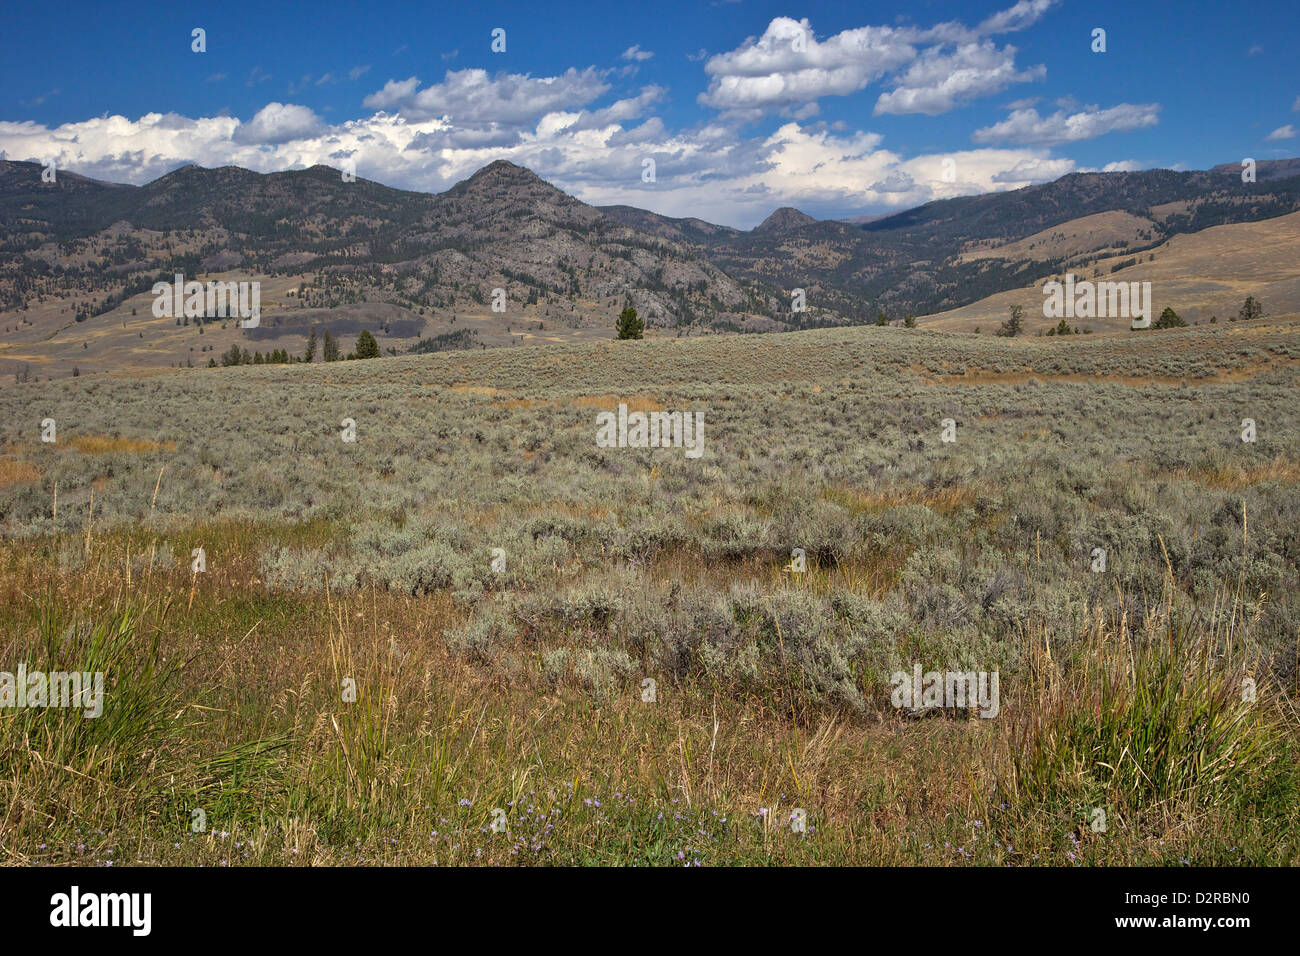 Landscape in Northern Yellowstone from Grand Loop Road, Yellowstone National Park, Wyoming, USA - Stock Image